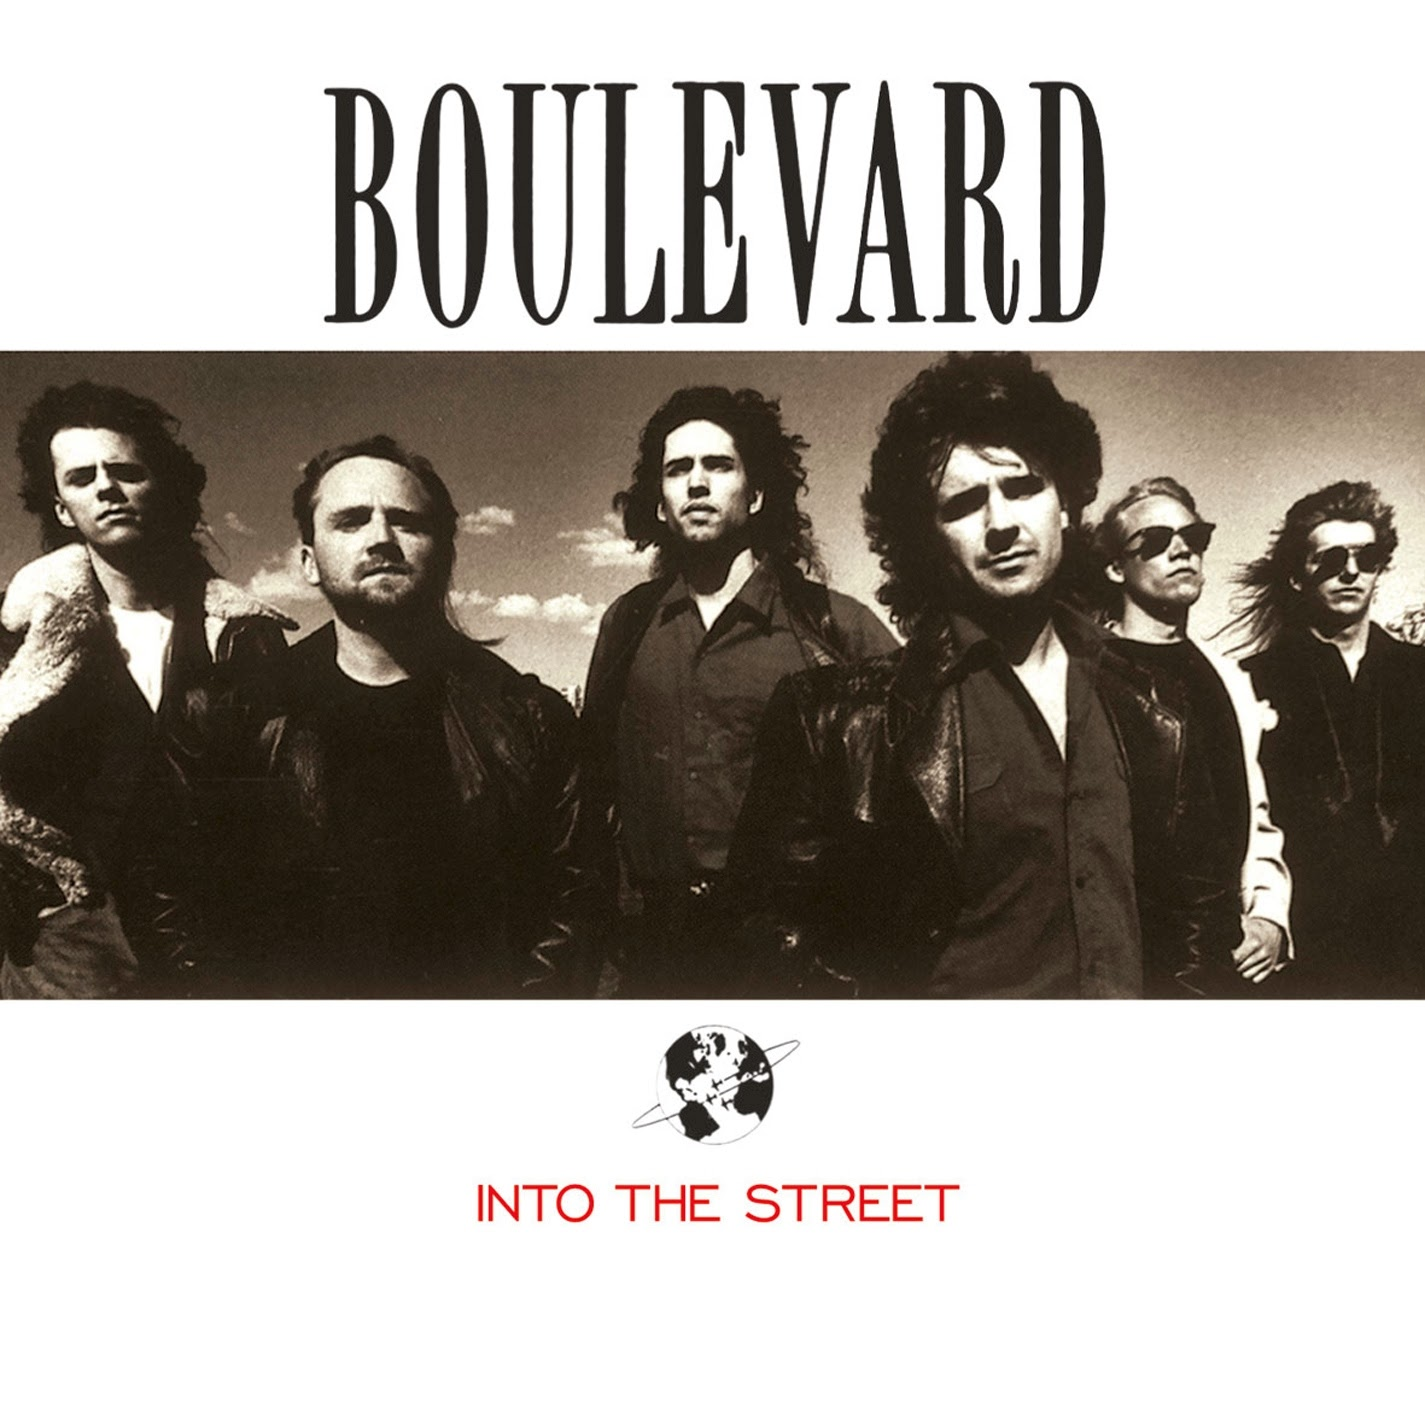 The Boulevard: 80's AOR & Melodic Rock Music